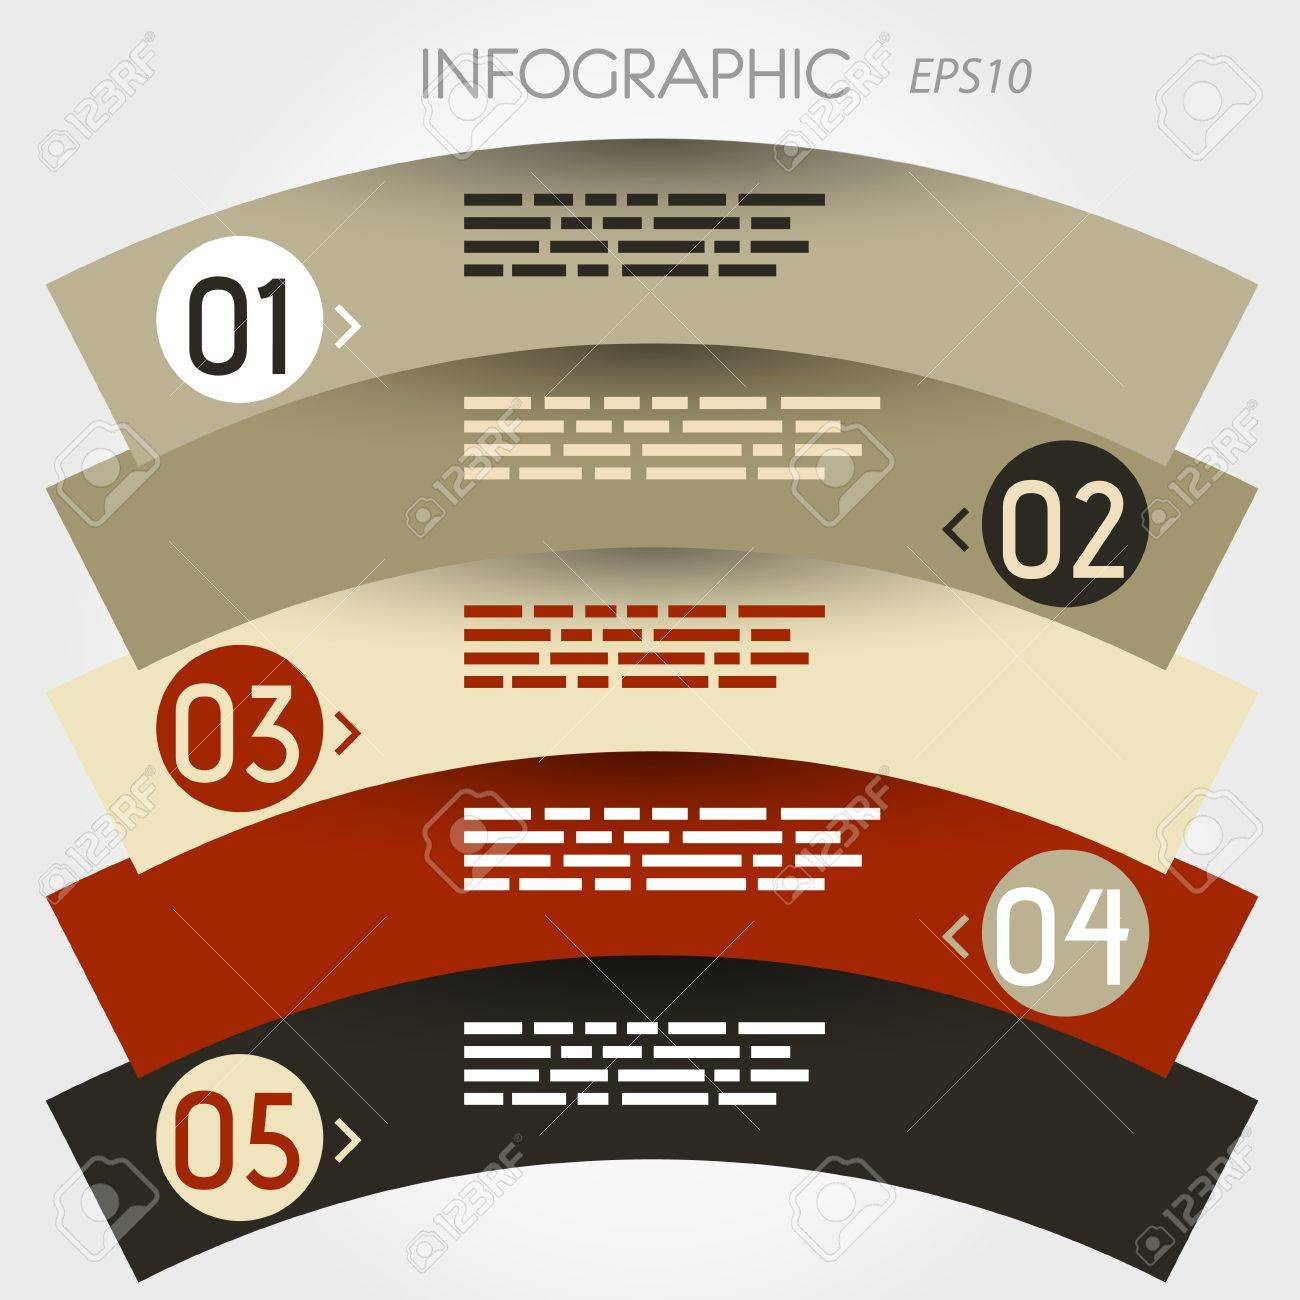 arc infographic five options in zig zag rings. infographic concept. Stock Vector - 20135840